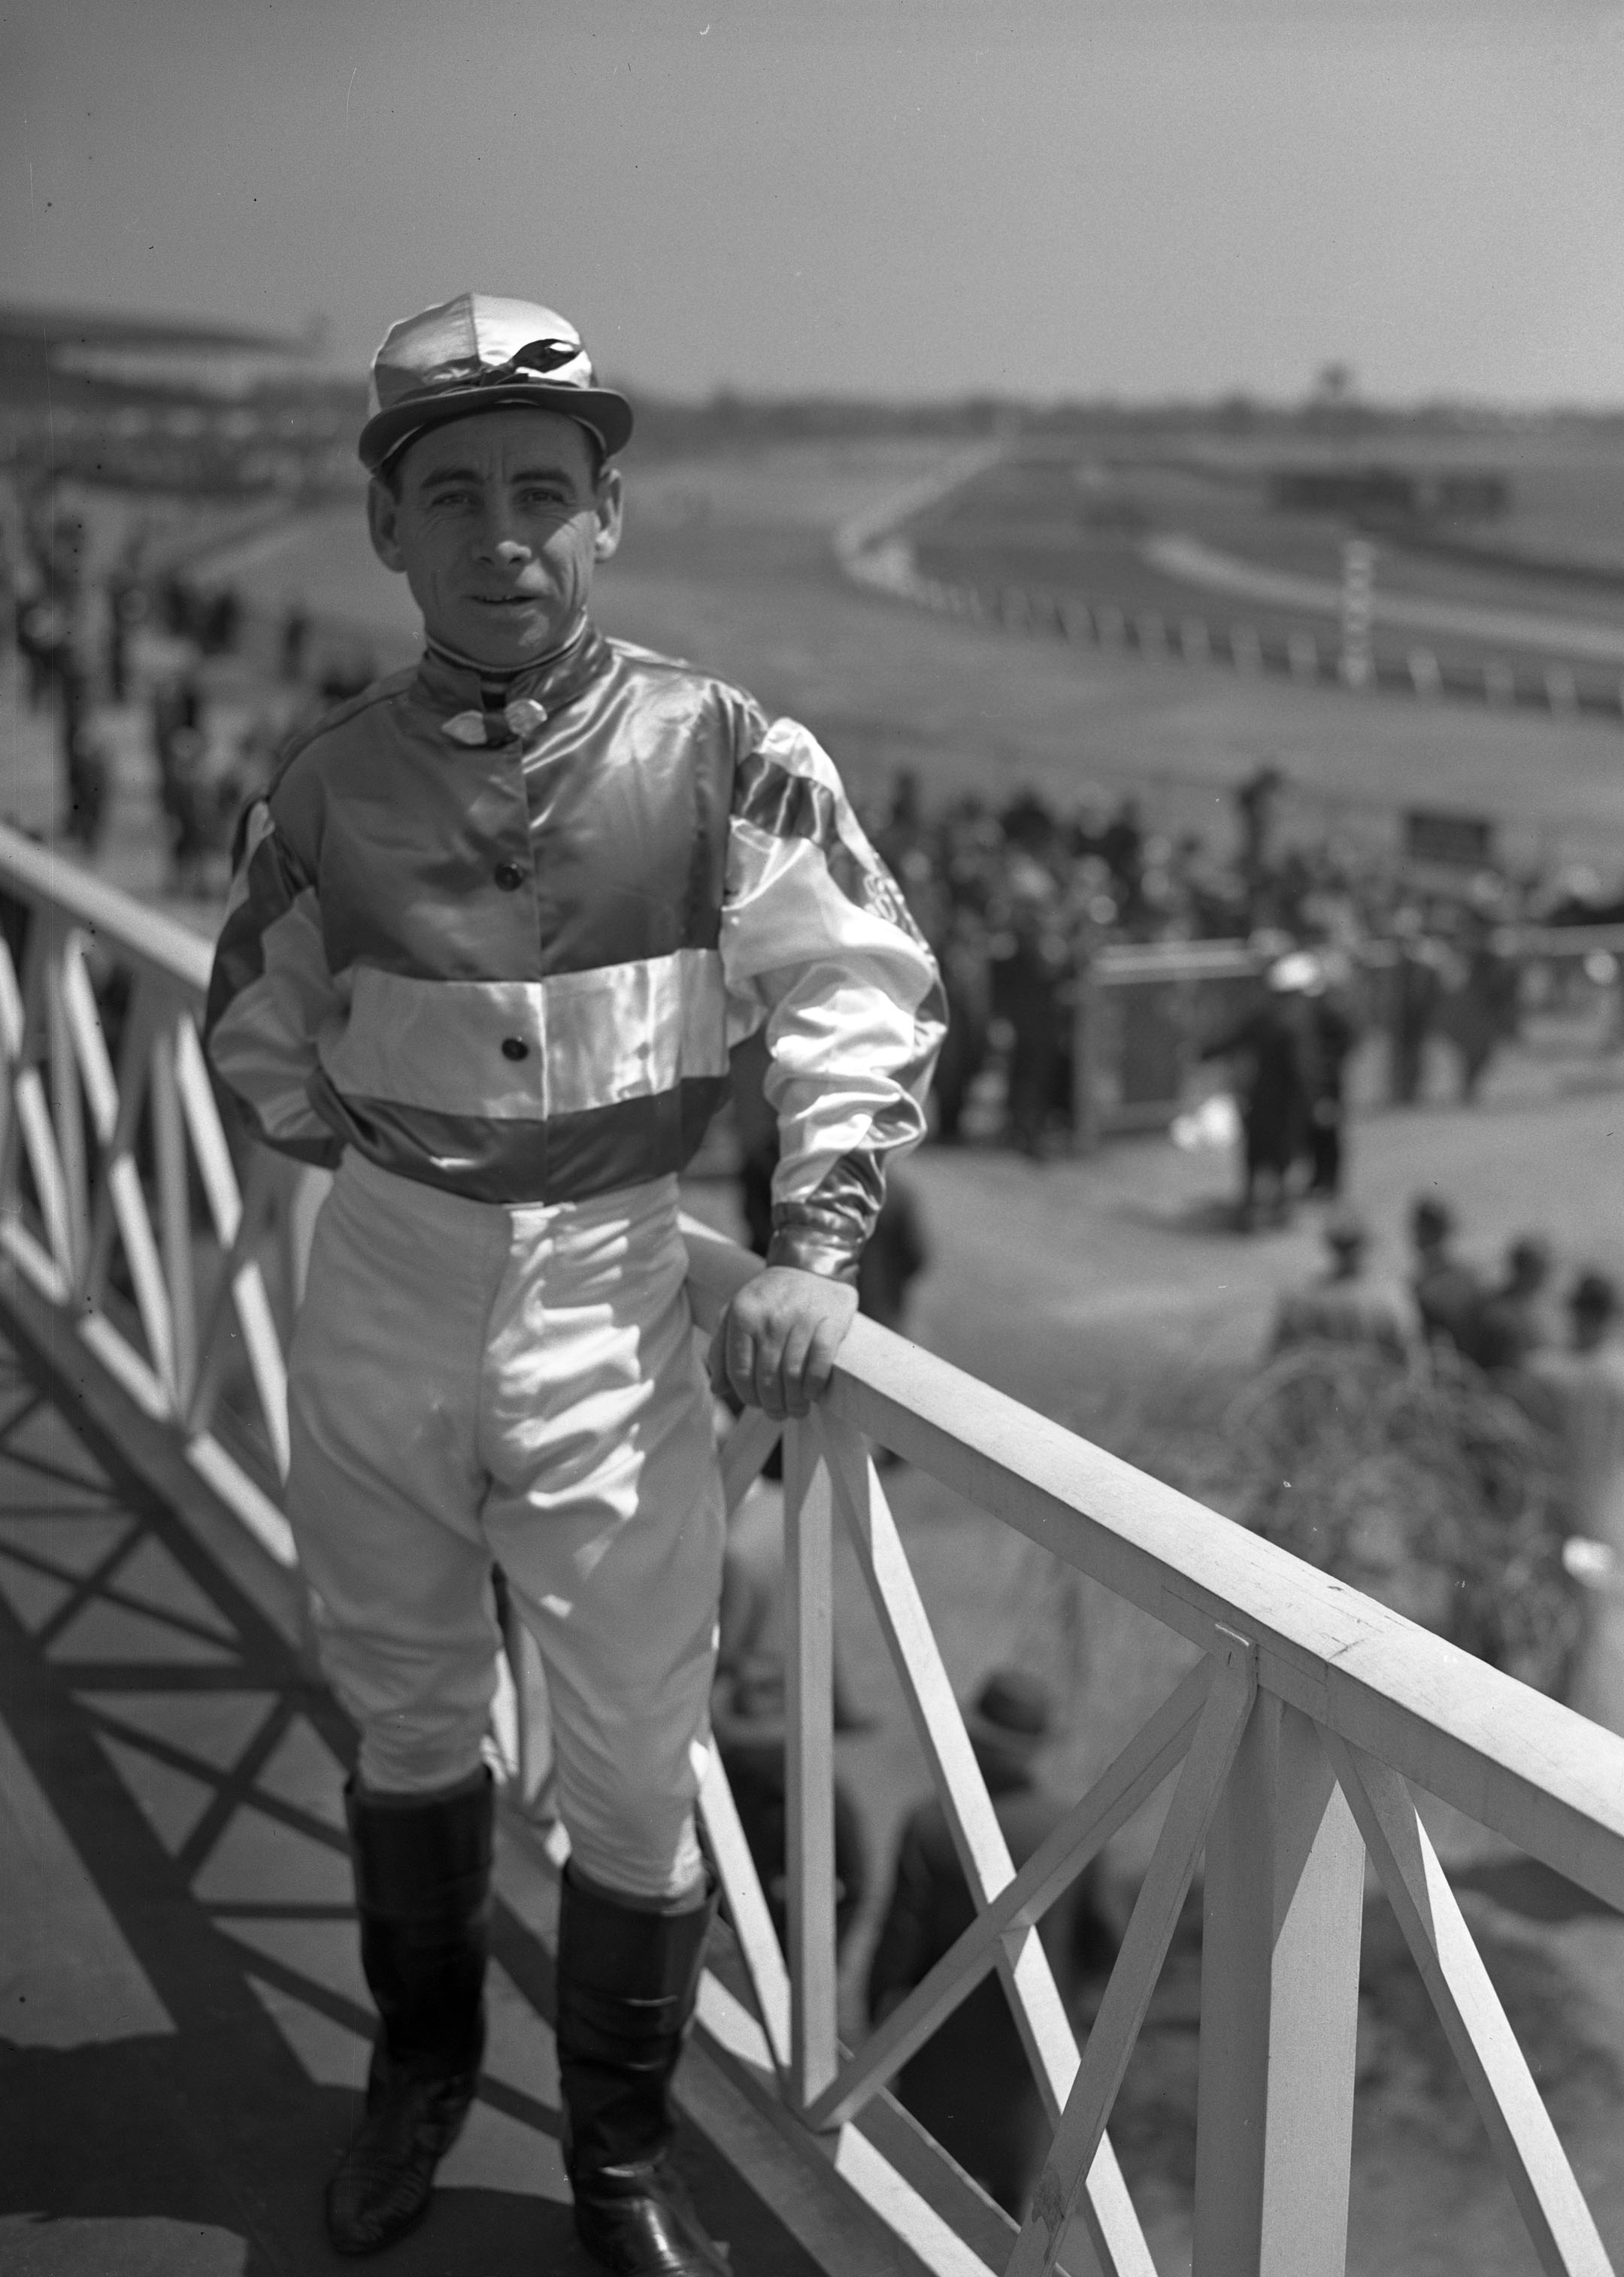 Johnny Longden, April 1944 (Keeneland Library Morgan Collection)